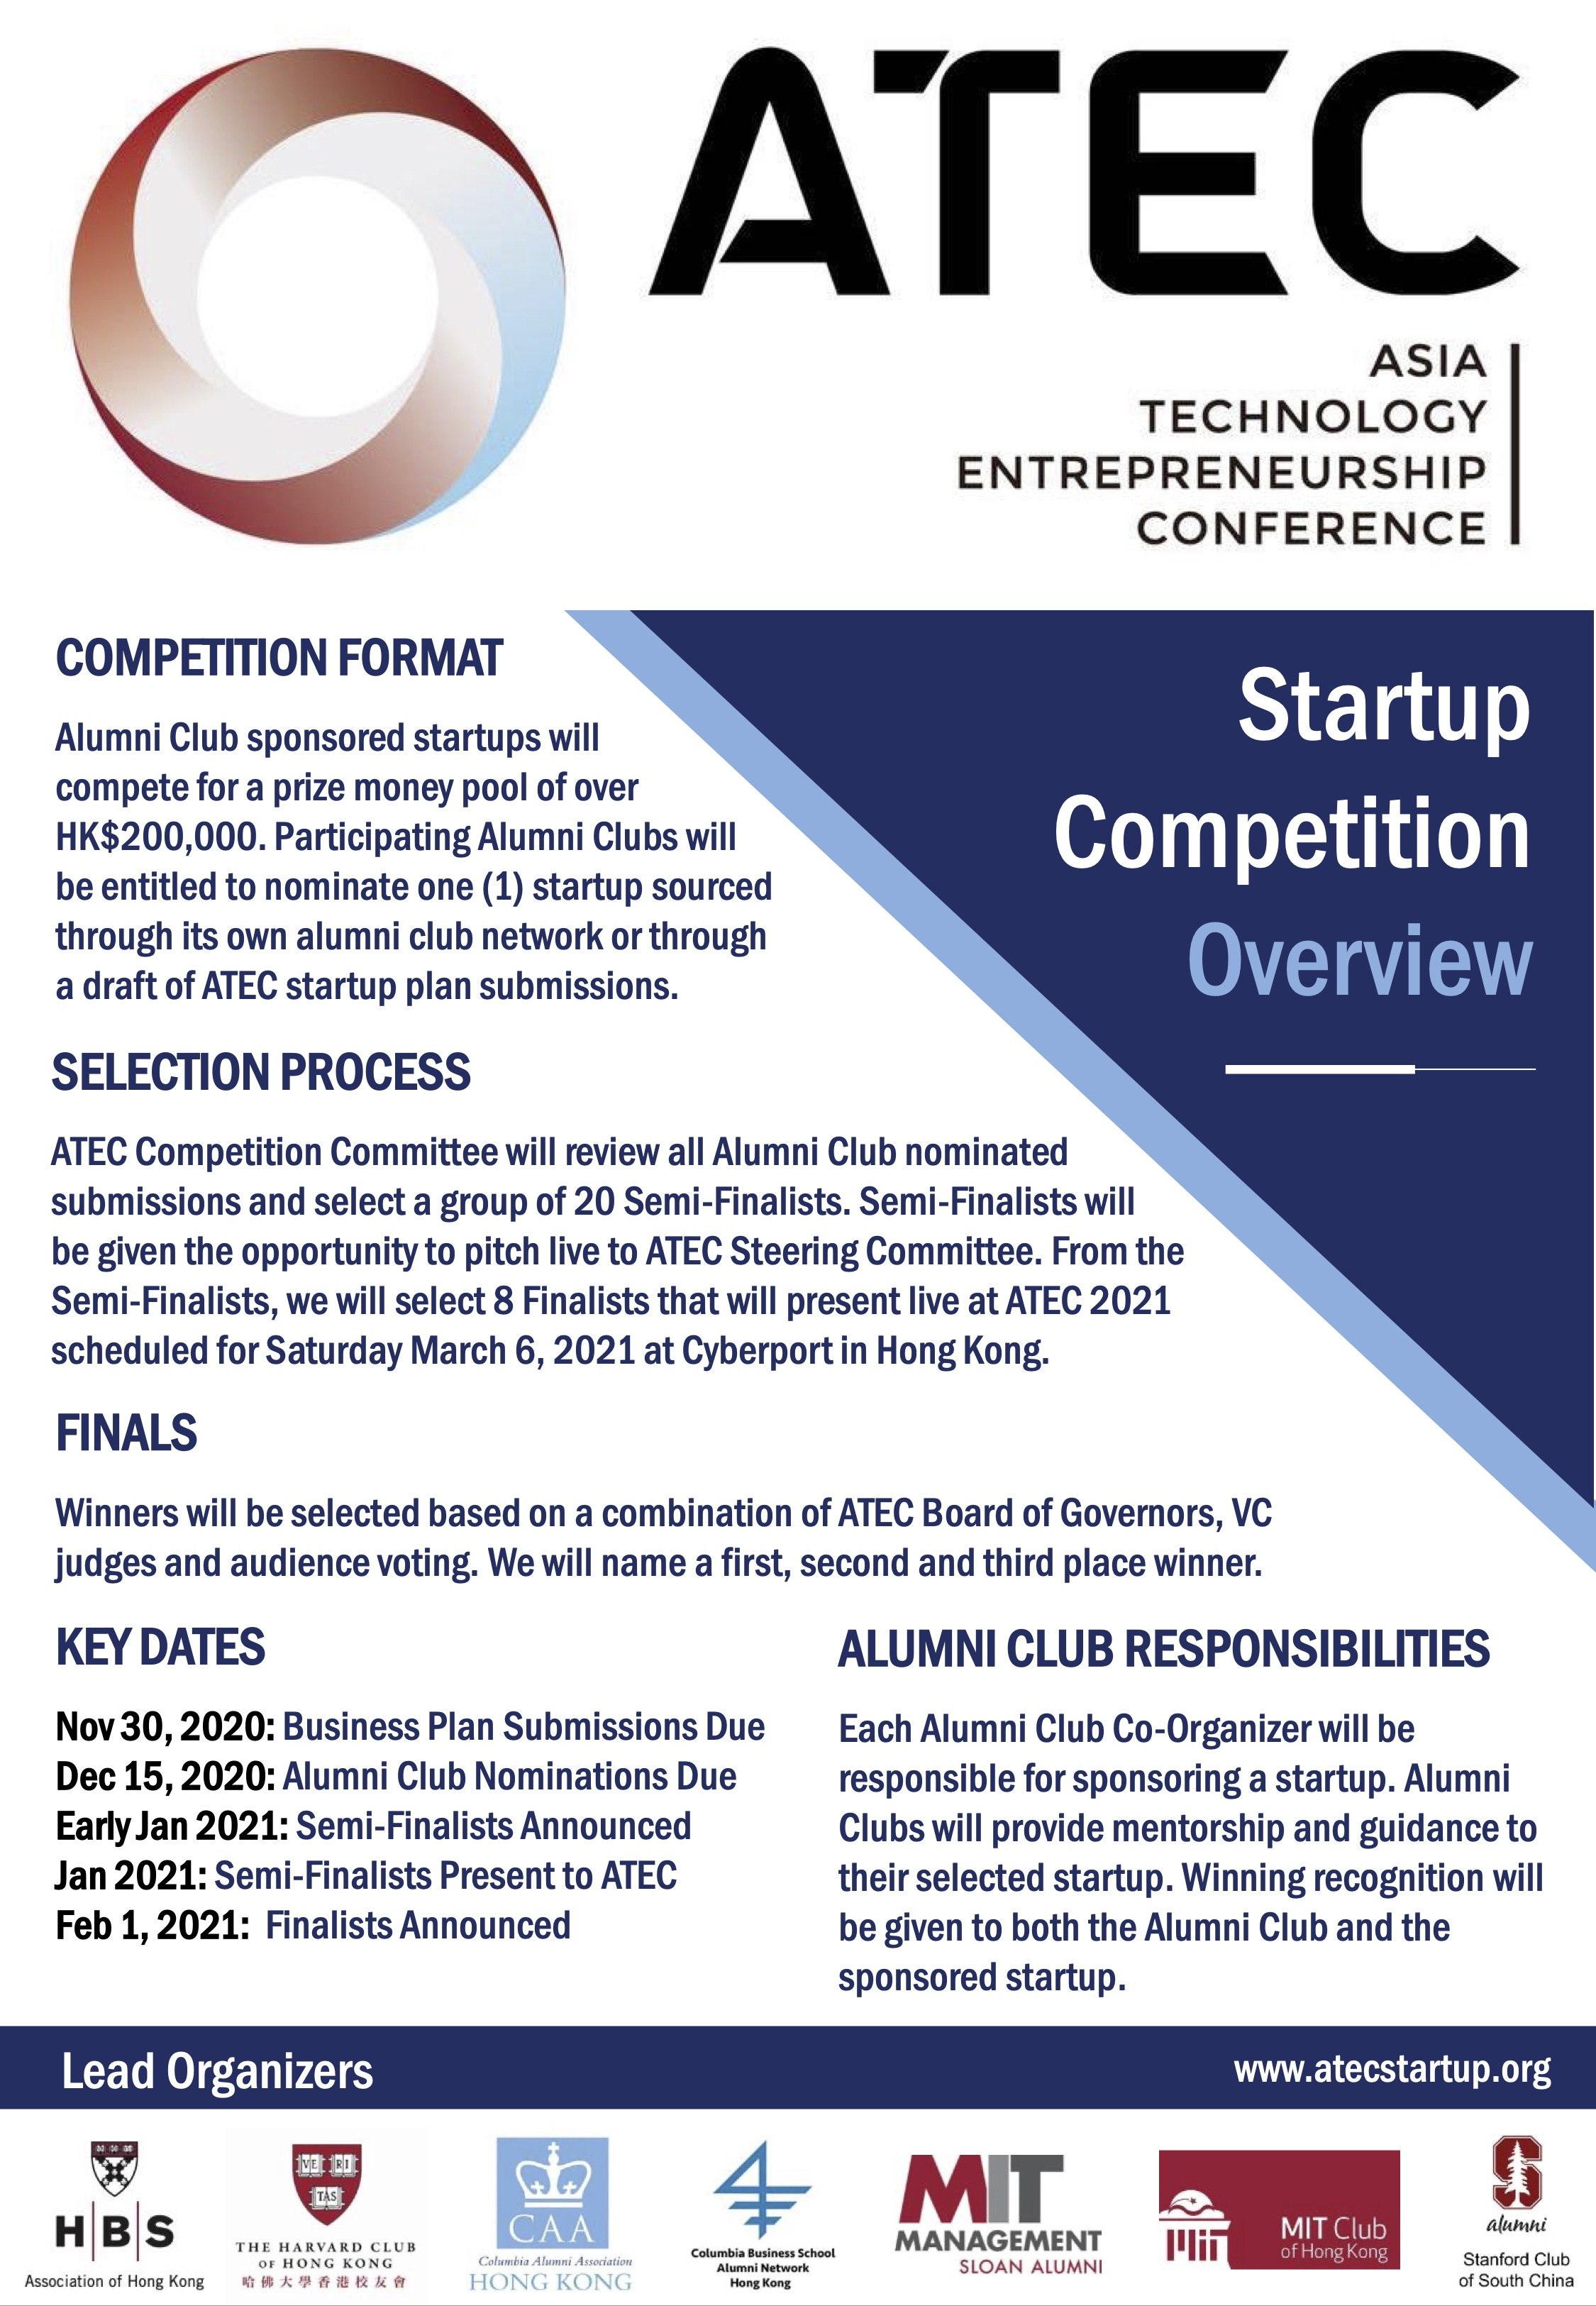 ATEC_Startup_Competition_Overview_draft_v.20201008-1.jpg